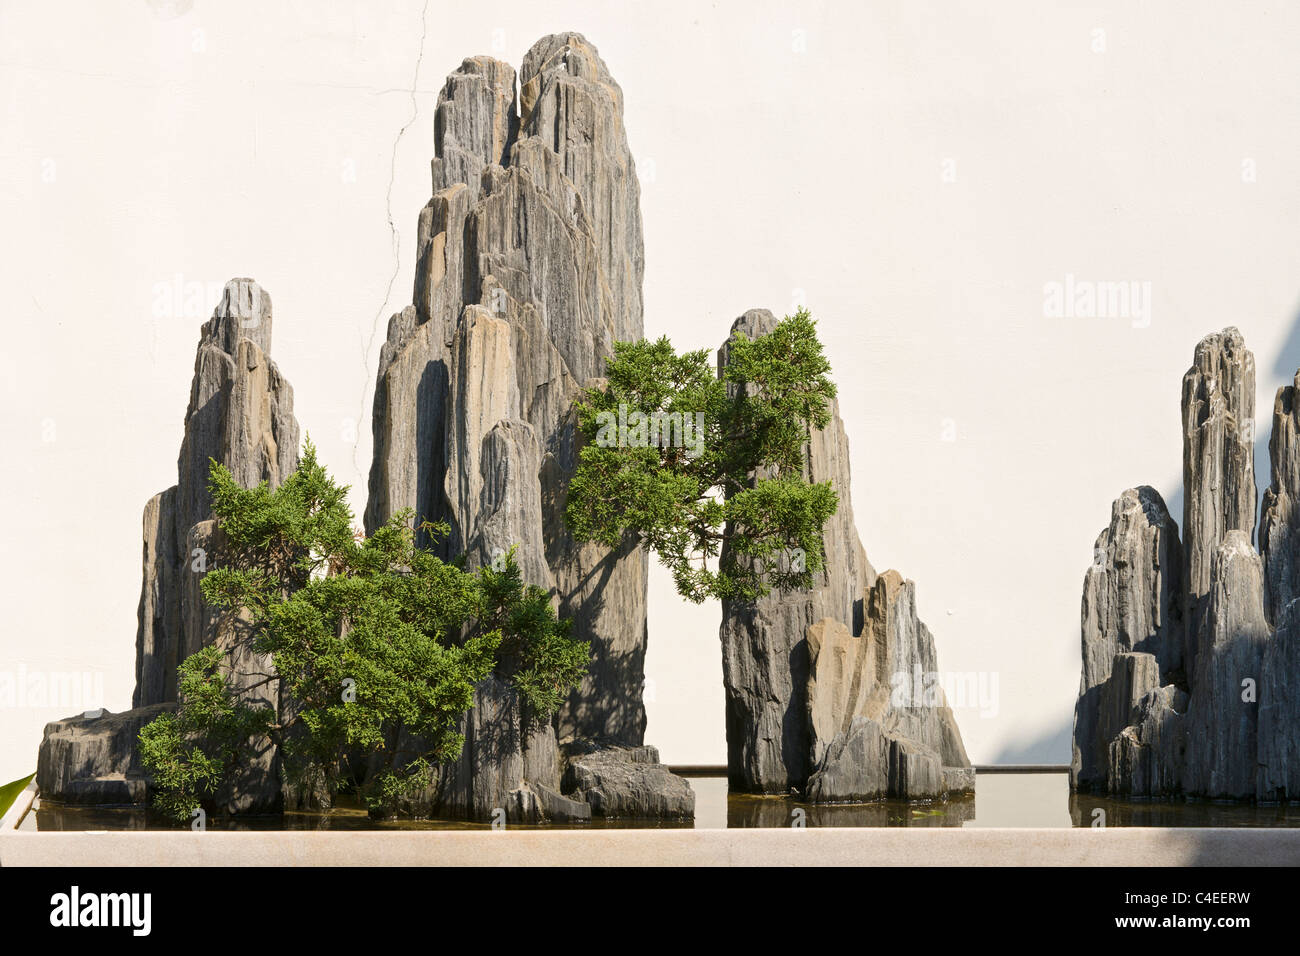 Miniature landscape with rock formations that simulate mountain peaks and accompanied by a suggestion of forest. - Stock Image